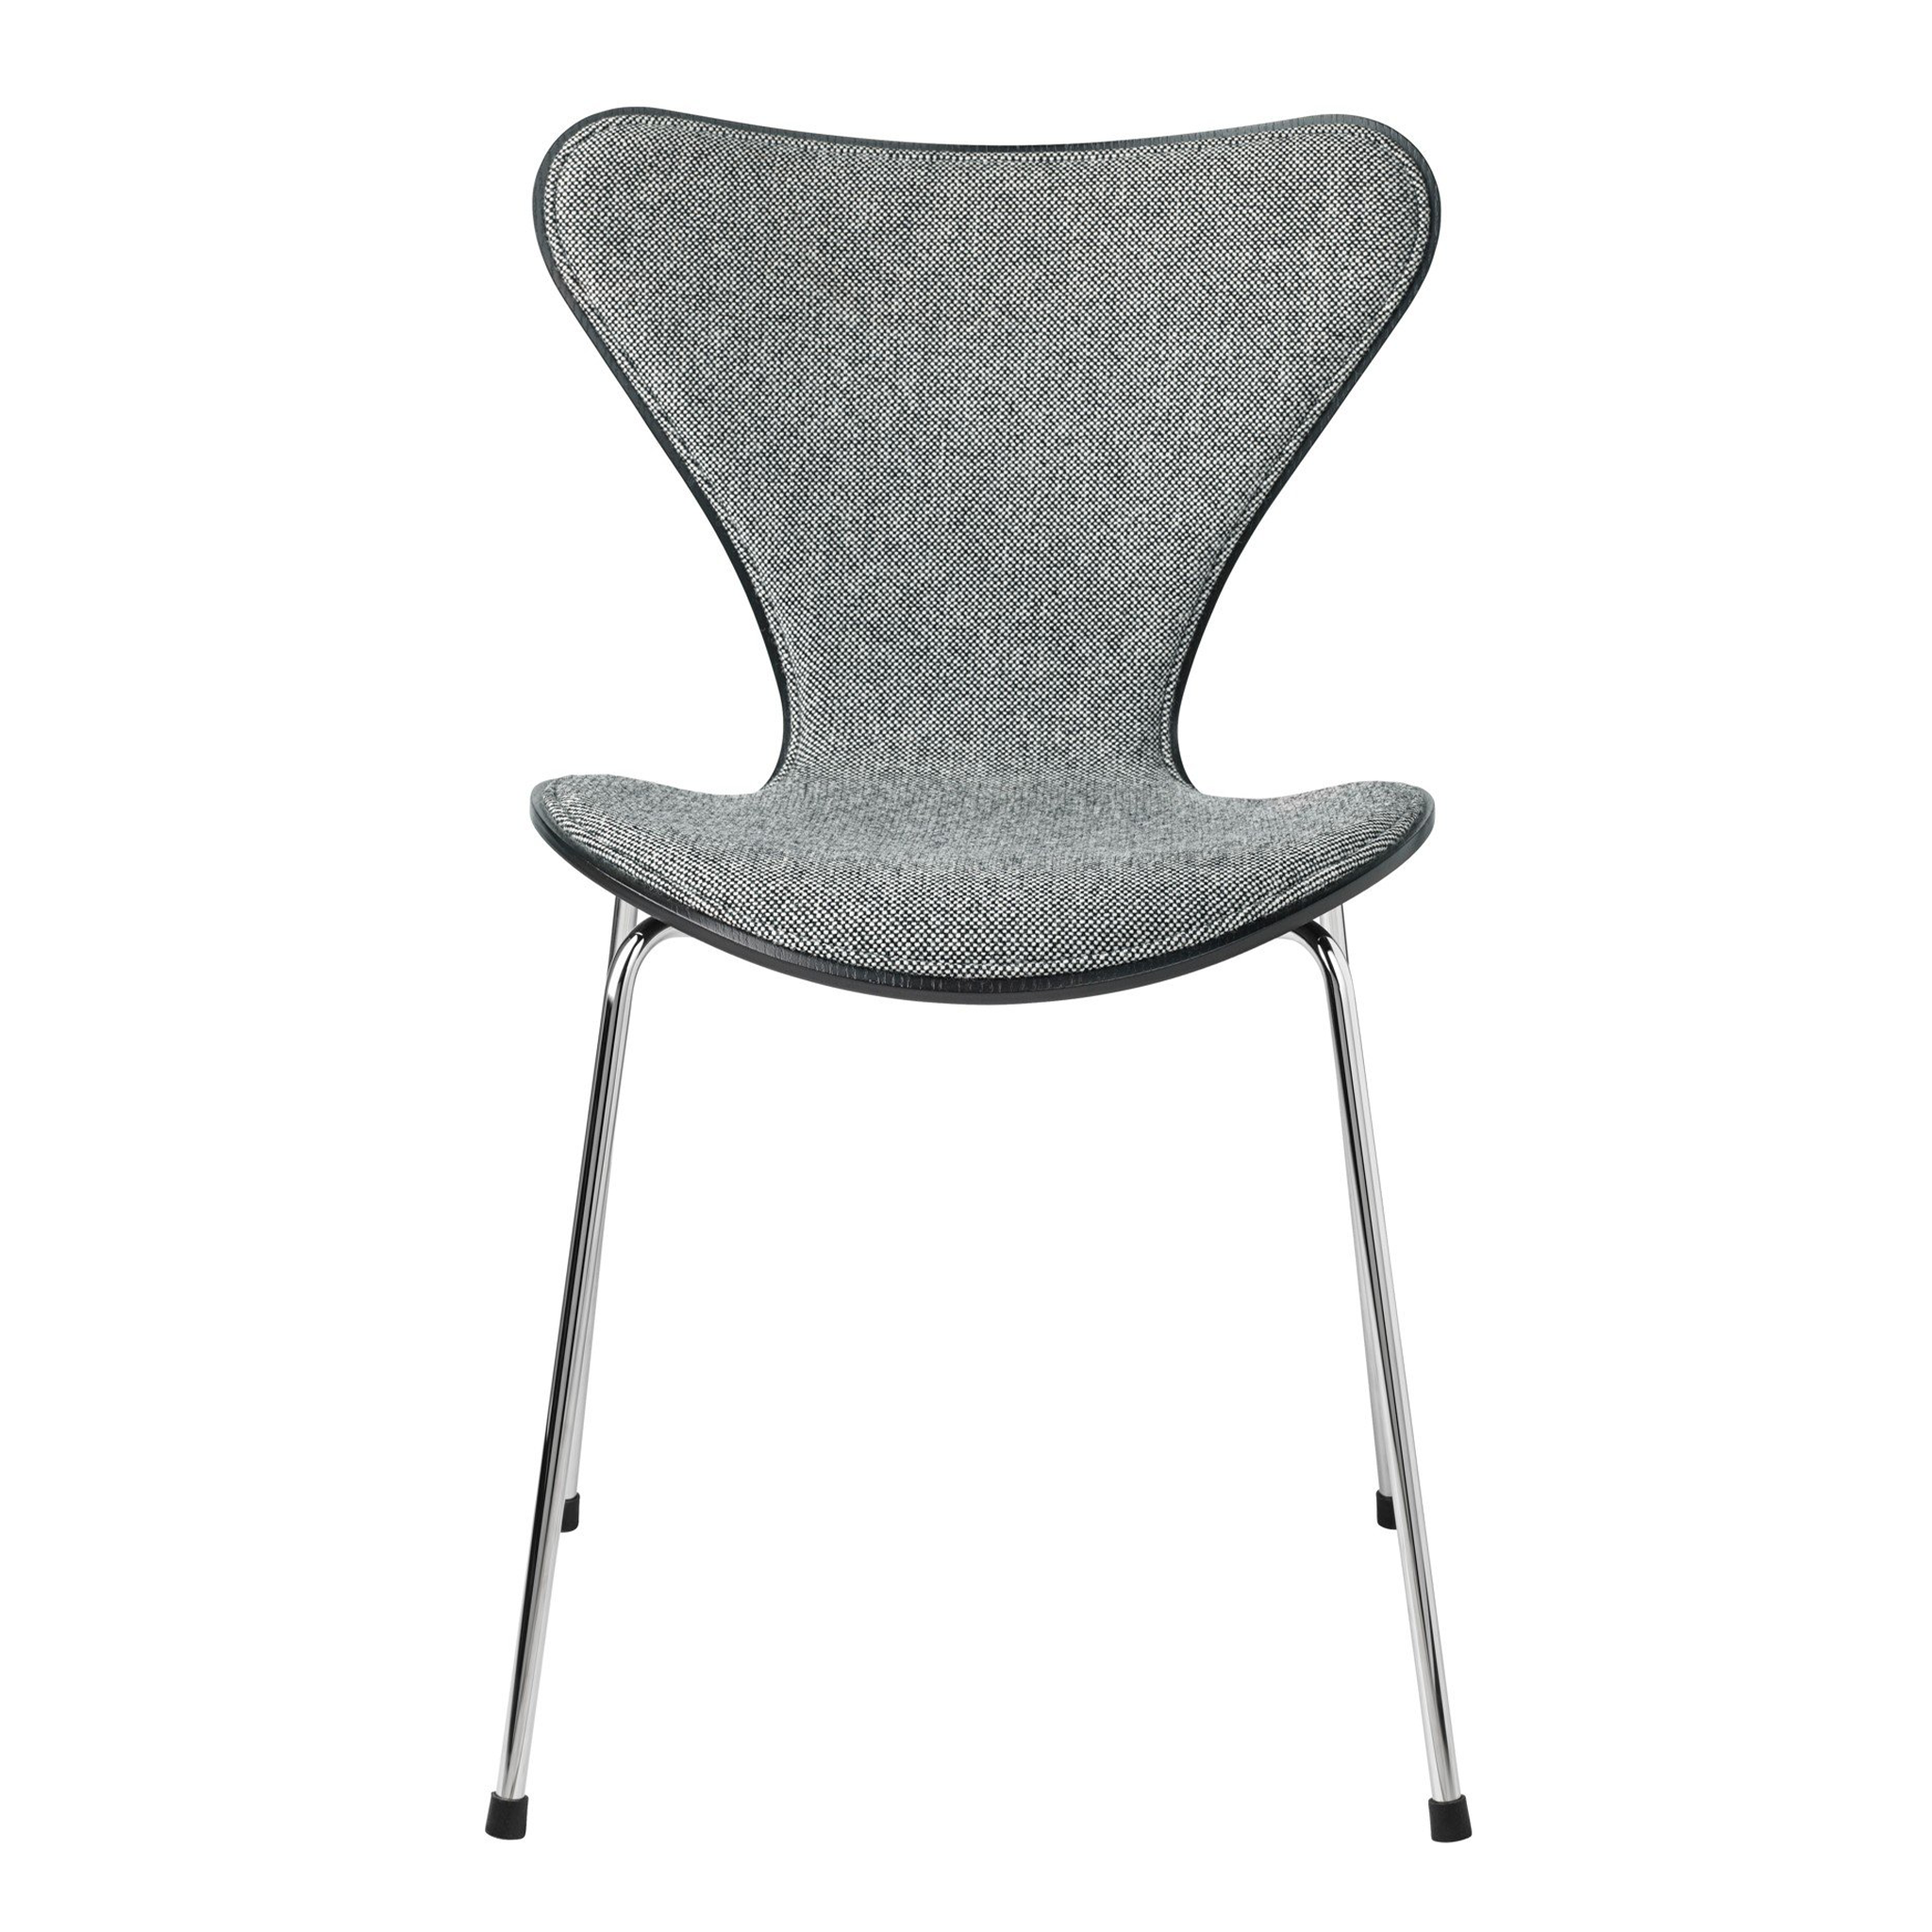 Series 7 Front Upholstered Chair Fabric by Fritz Hansen